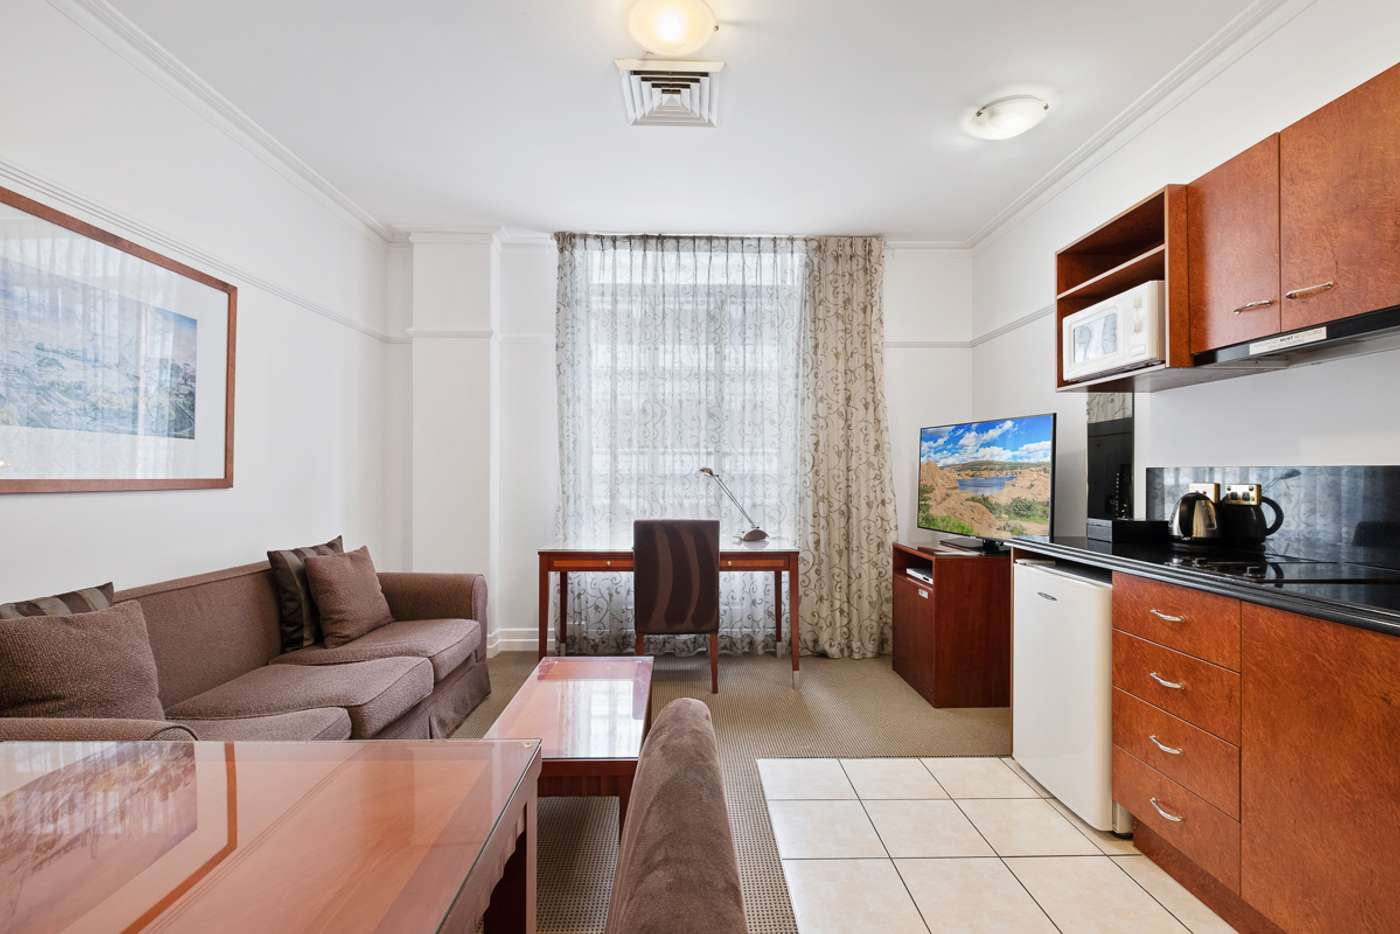 Main view of Homely apartment listing, 2006/255 Ann Street, Brisbane City QLD 4000